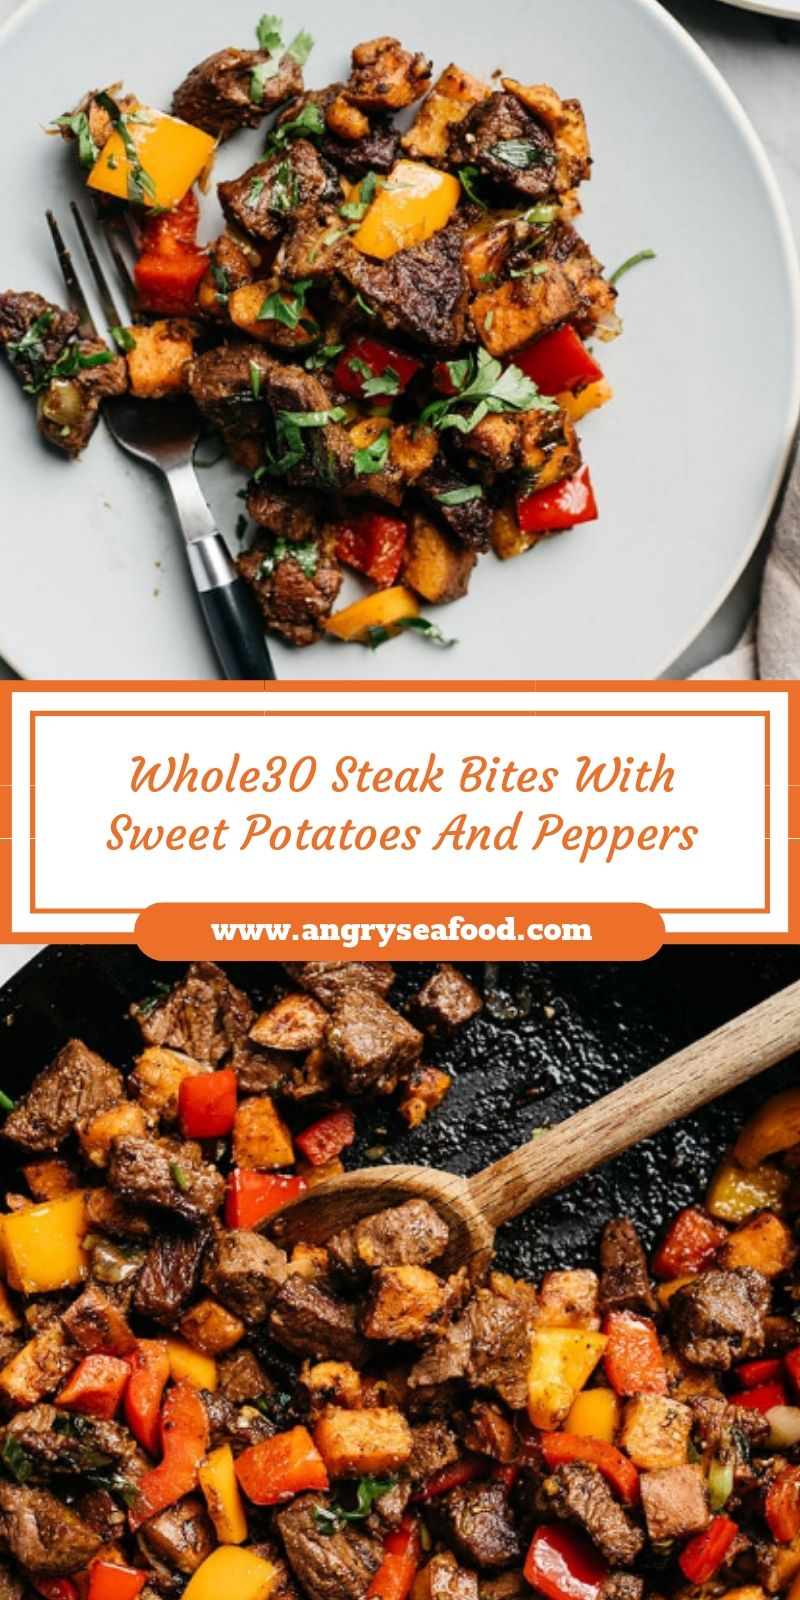 Whole30 Steak Bites wWth Sweet Potatoes And Peppers